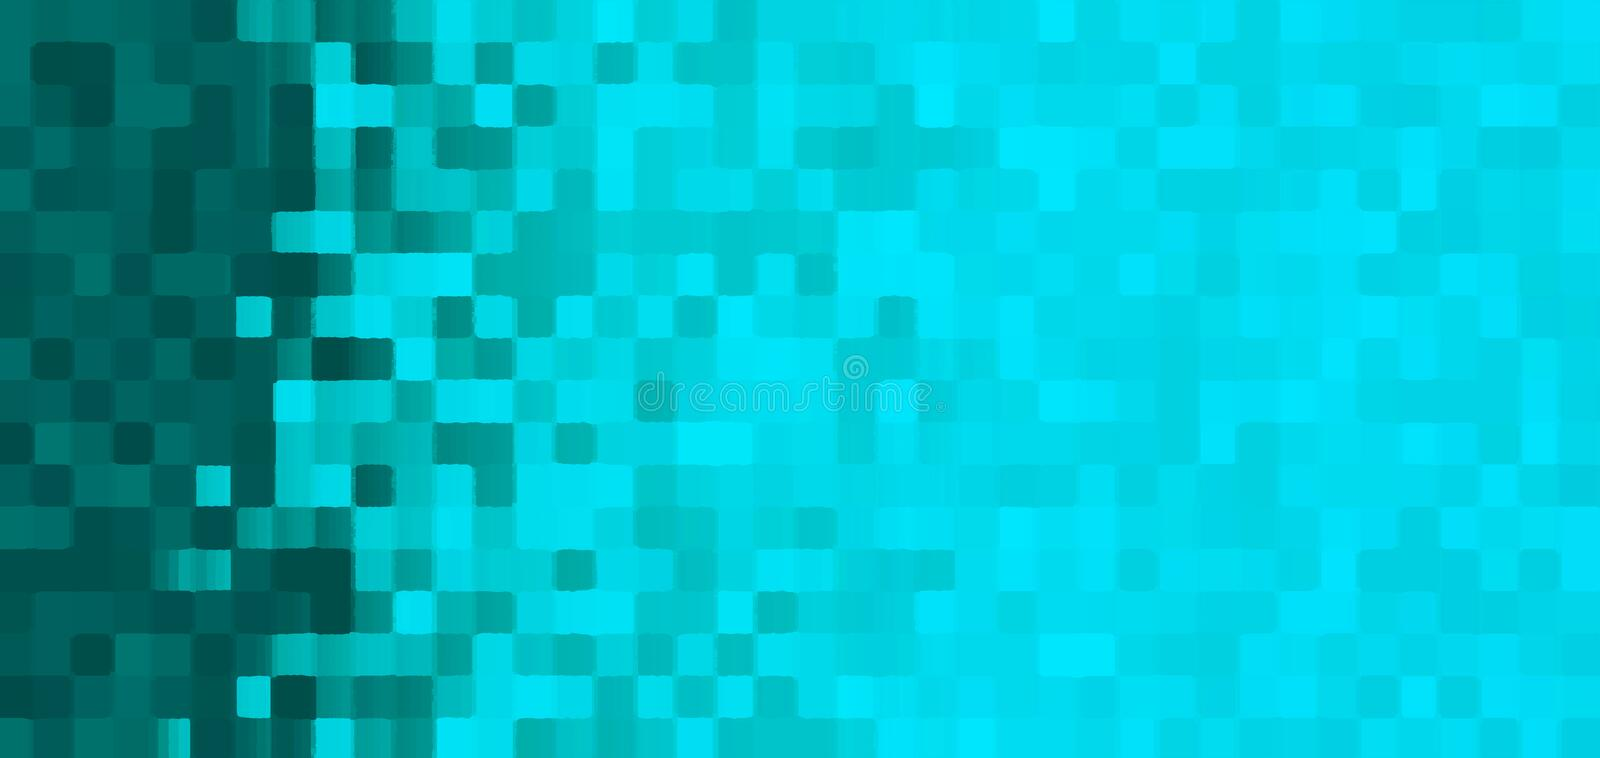 Cyan mosaic background with gradient royalty free illustration